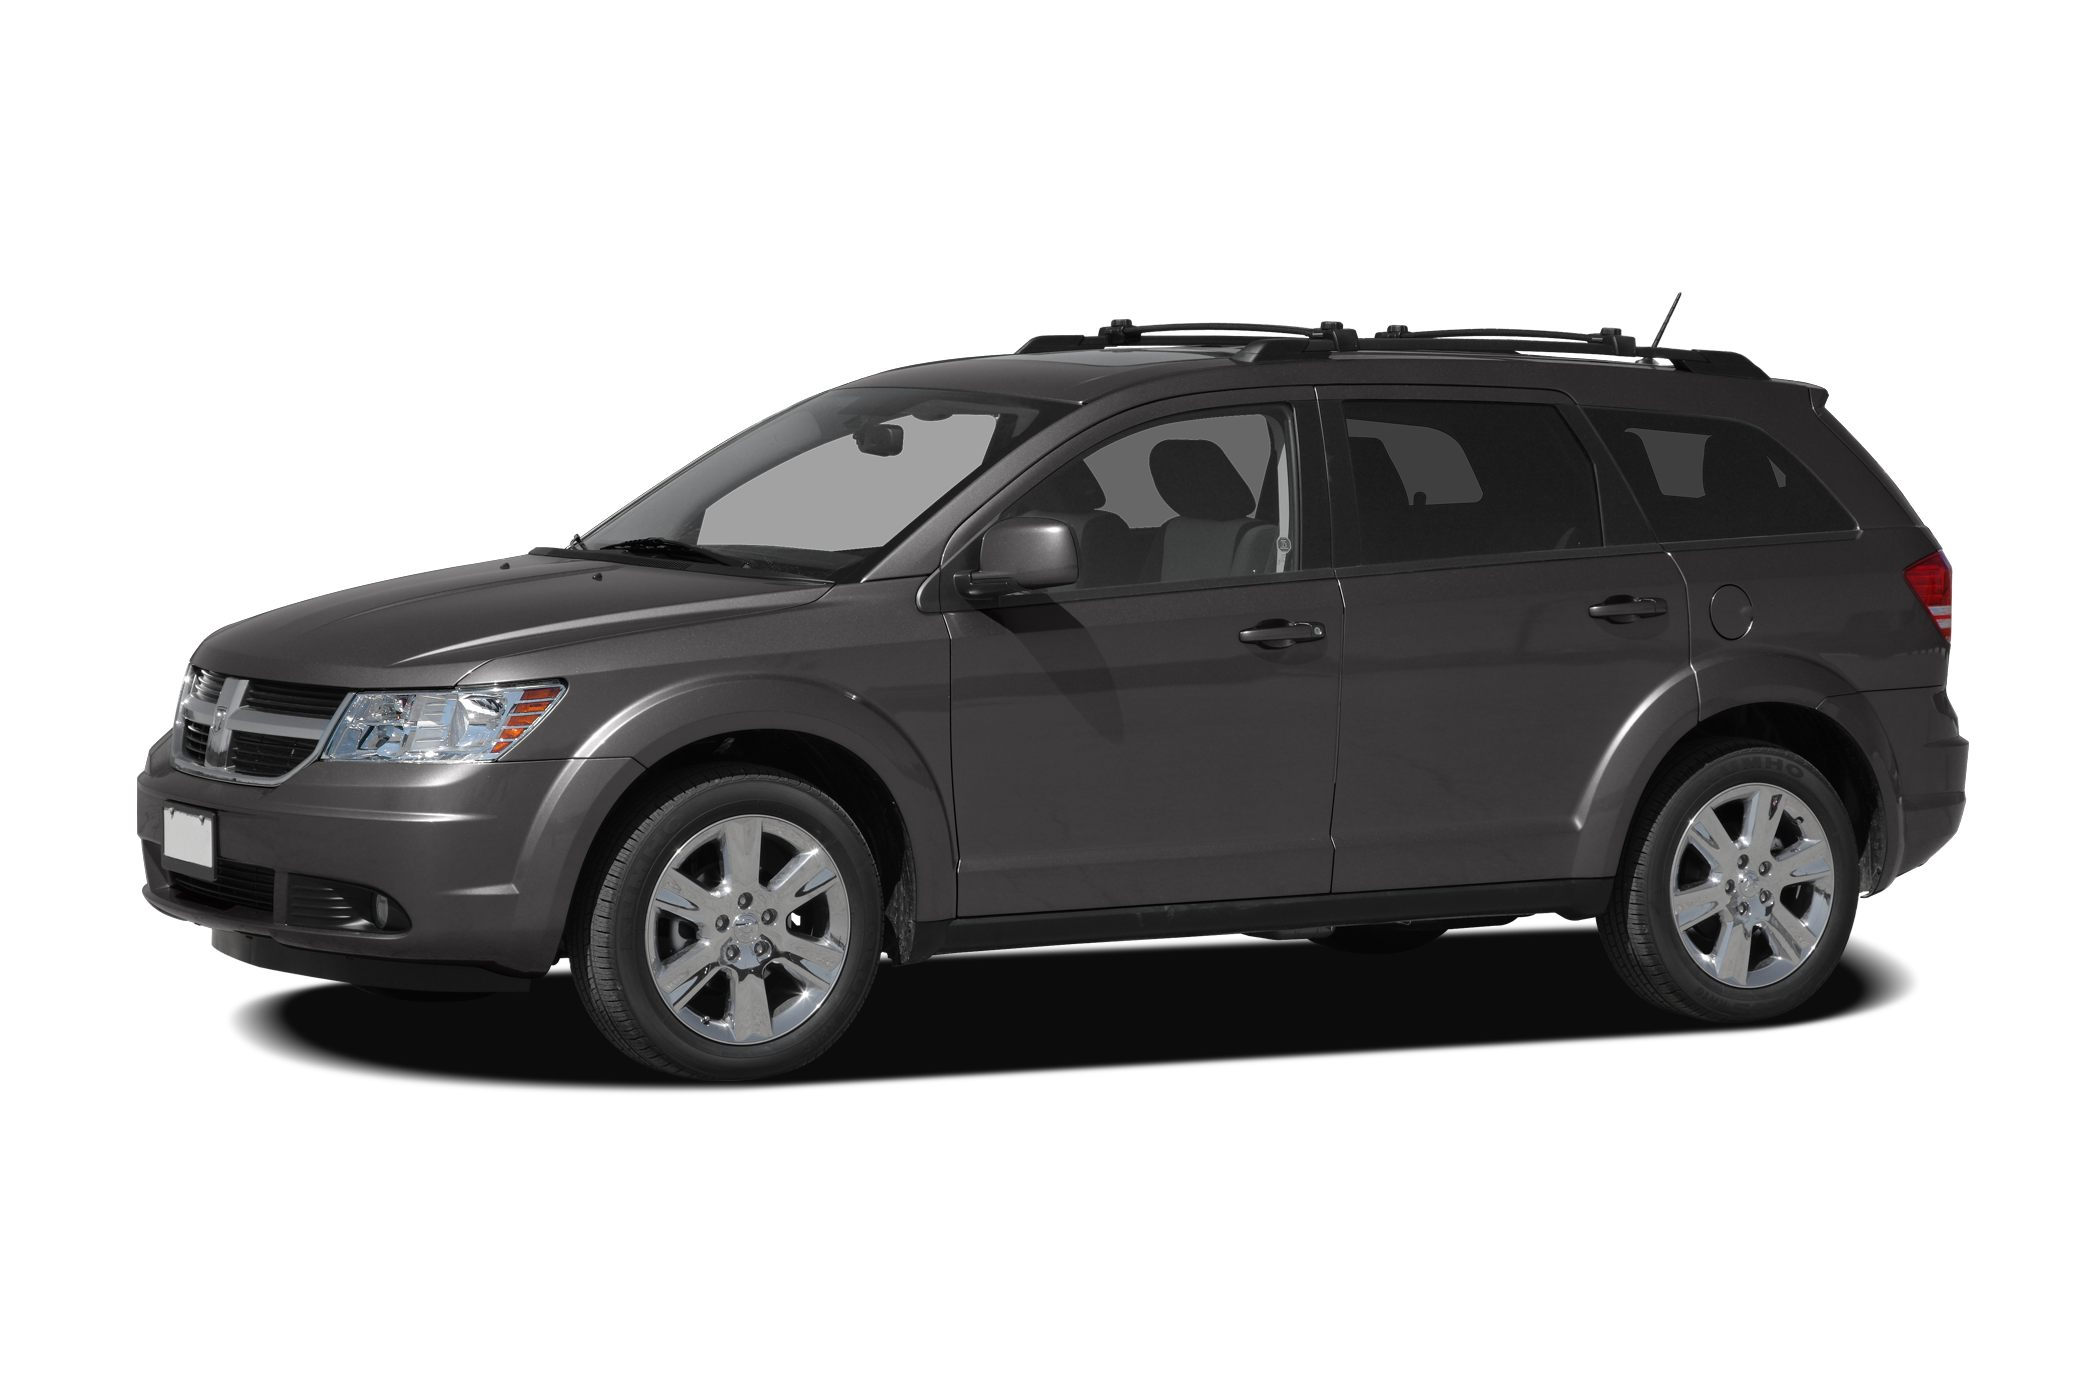 2009 Dodge Journey SXT SUV for sale in Beaver for $11,990 with 81,832 miles